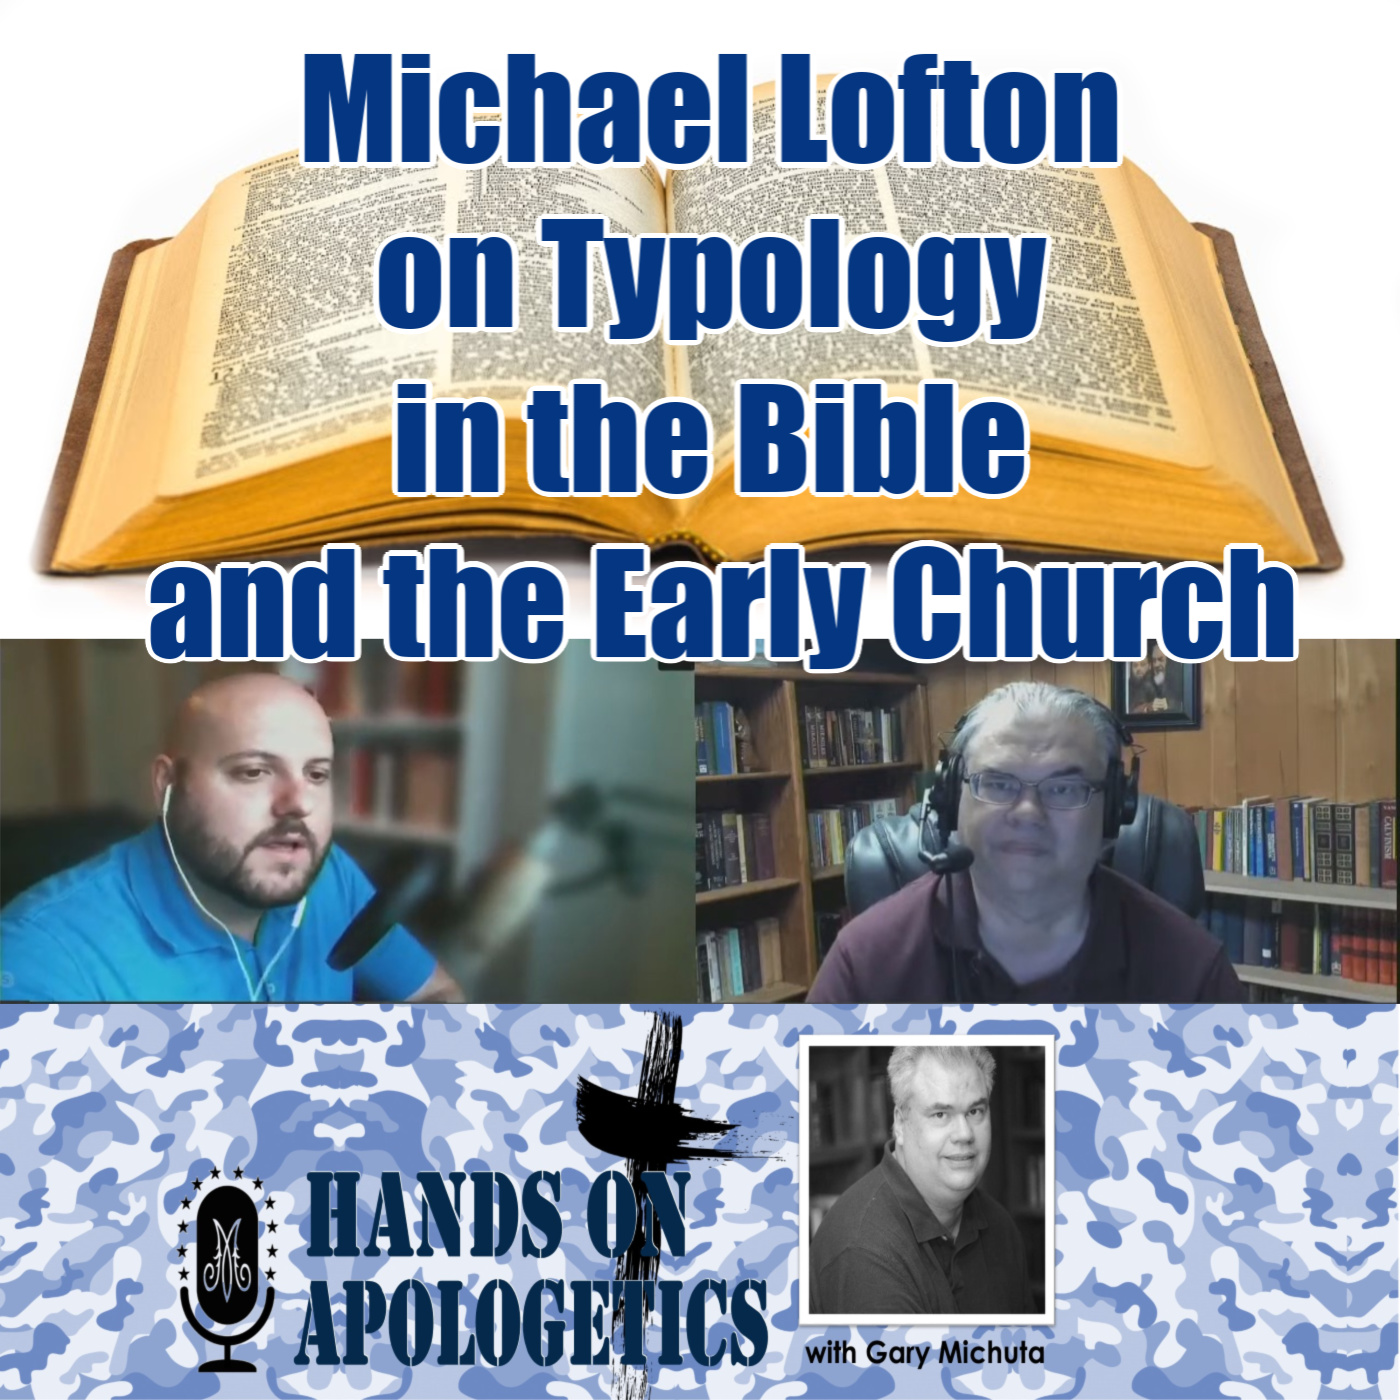 19 Jun 2020 – Michael Lofton on Typology in the Bible and Early Church